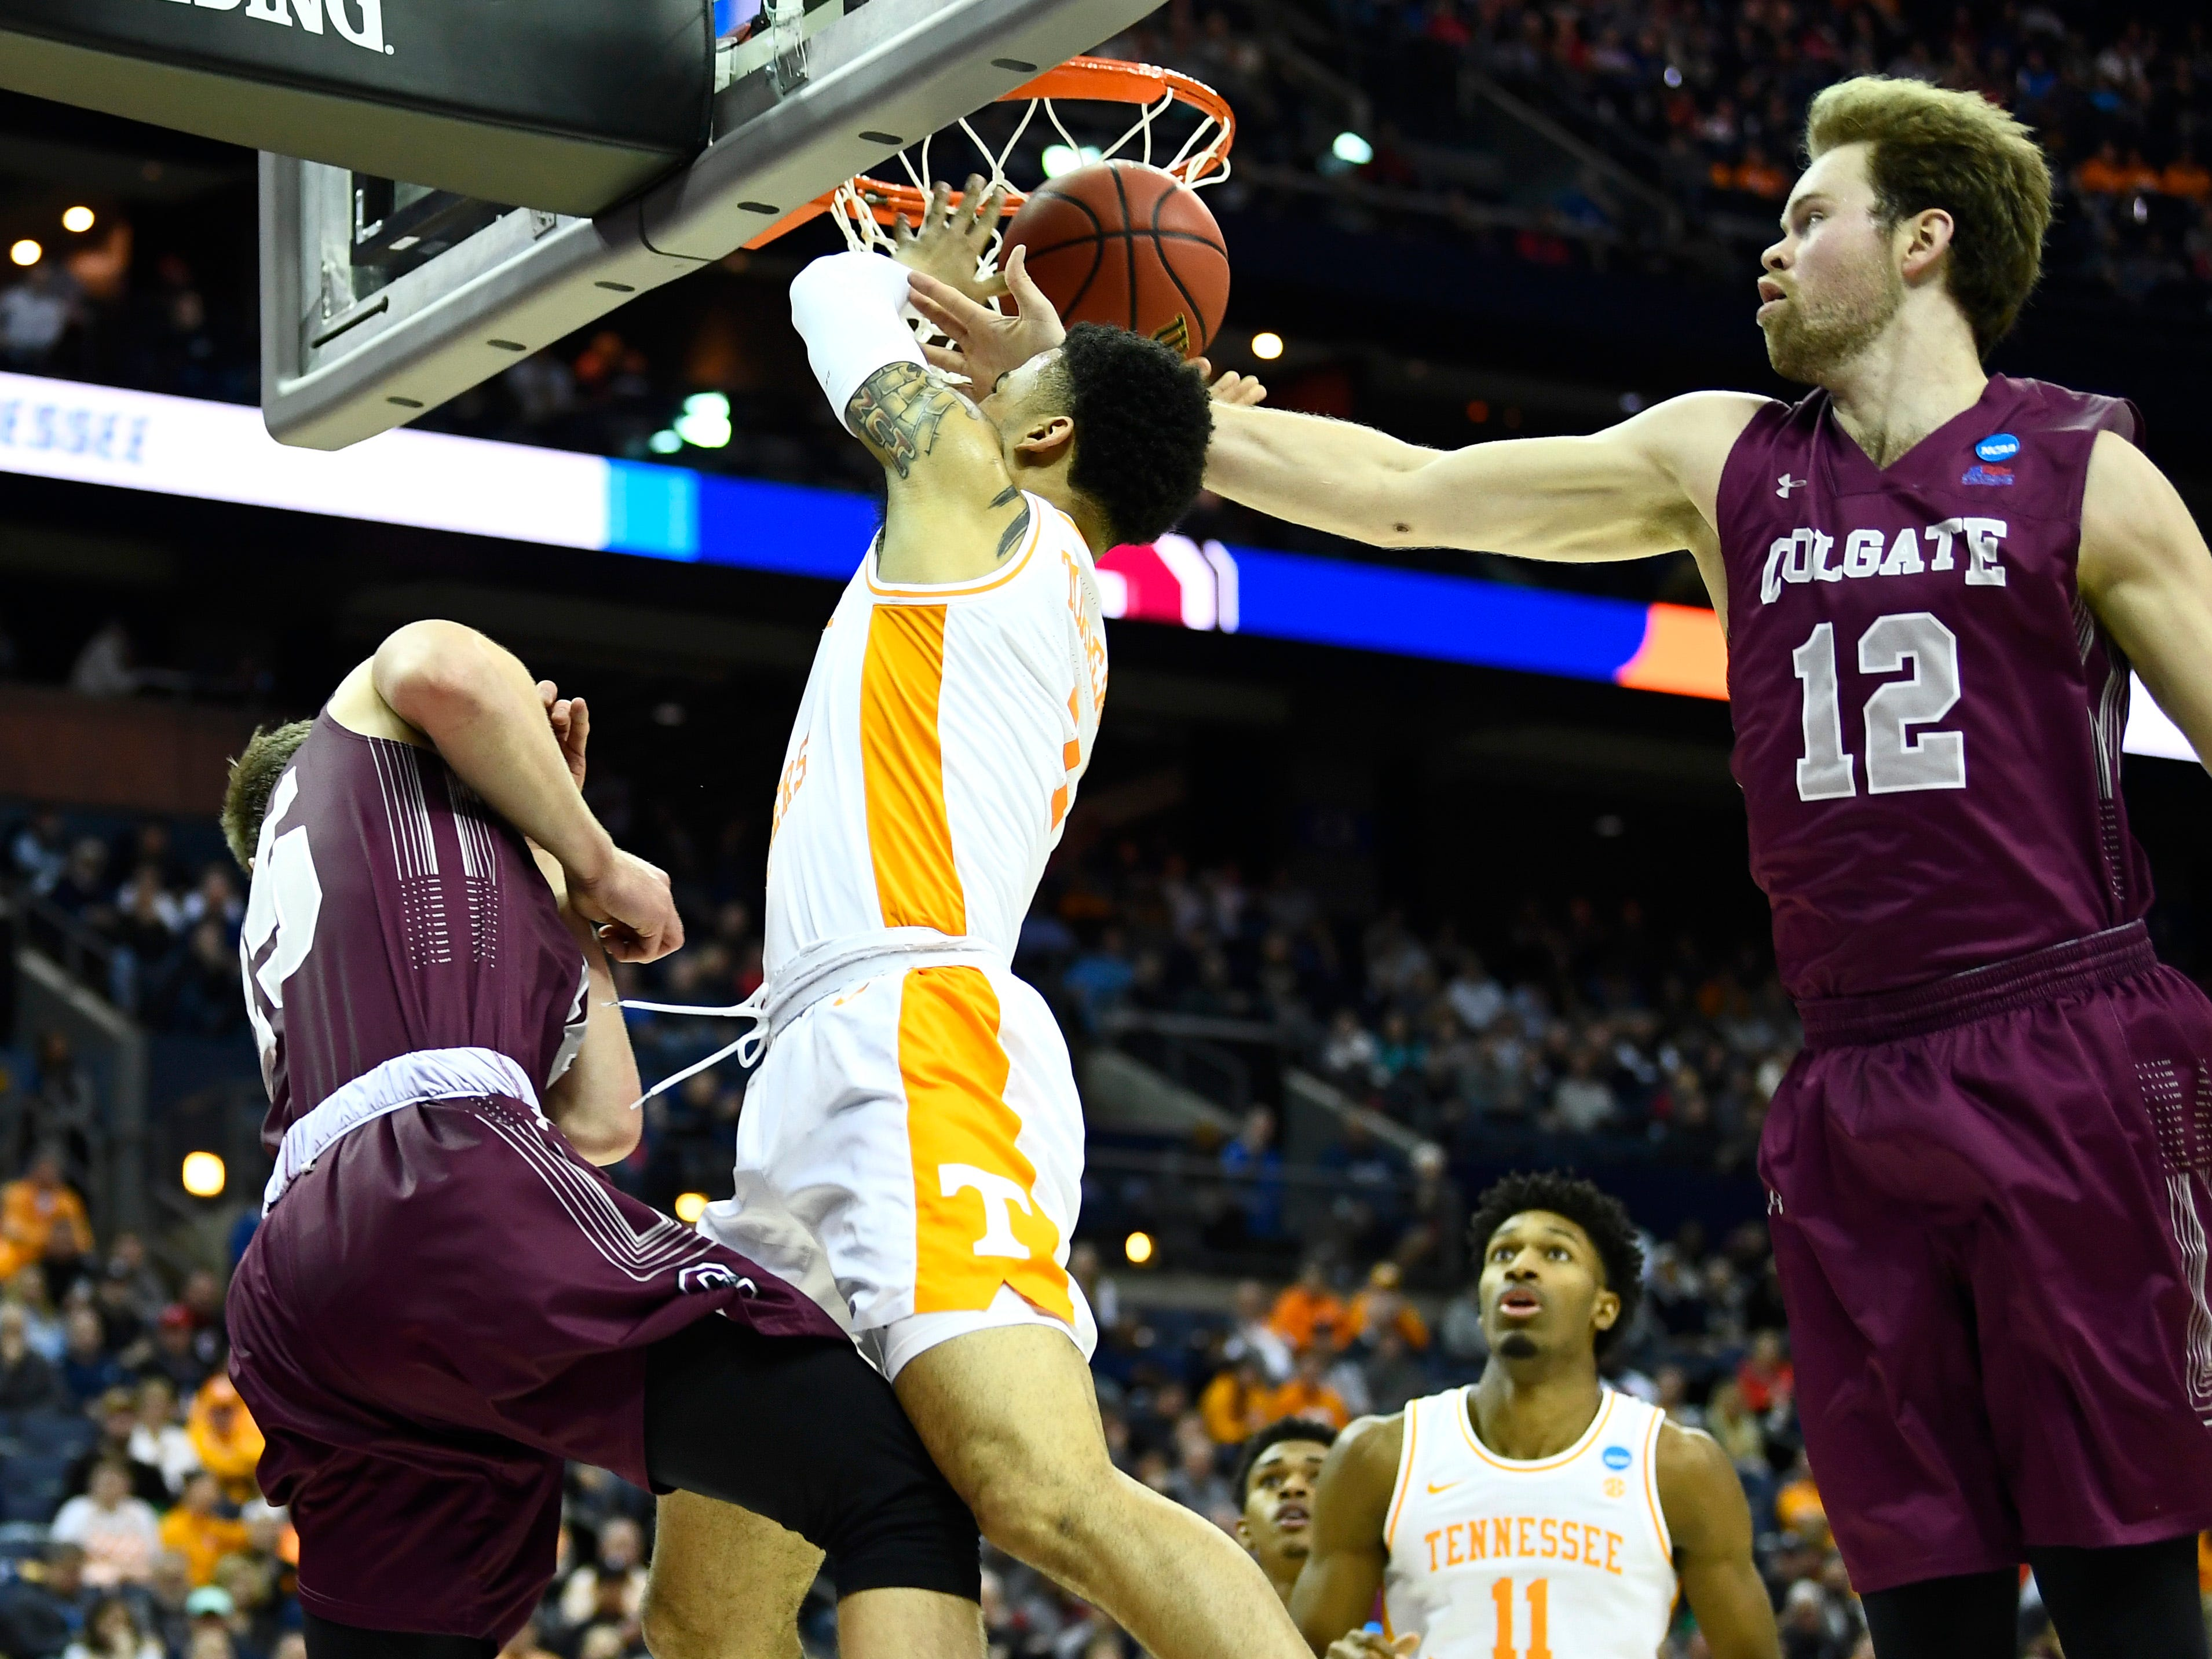 Tennessee guard Lamonte Turner (1) is fouled by Colgate center Dana Batt (12) during their first round game of the NCAA Tournament at Nationwide Arena in Columbus, Ohio, on Friday, March 22, 2019.